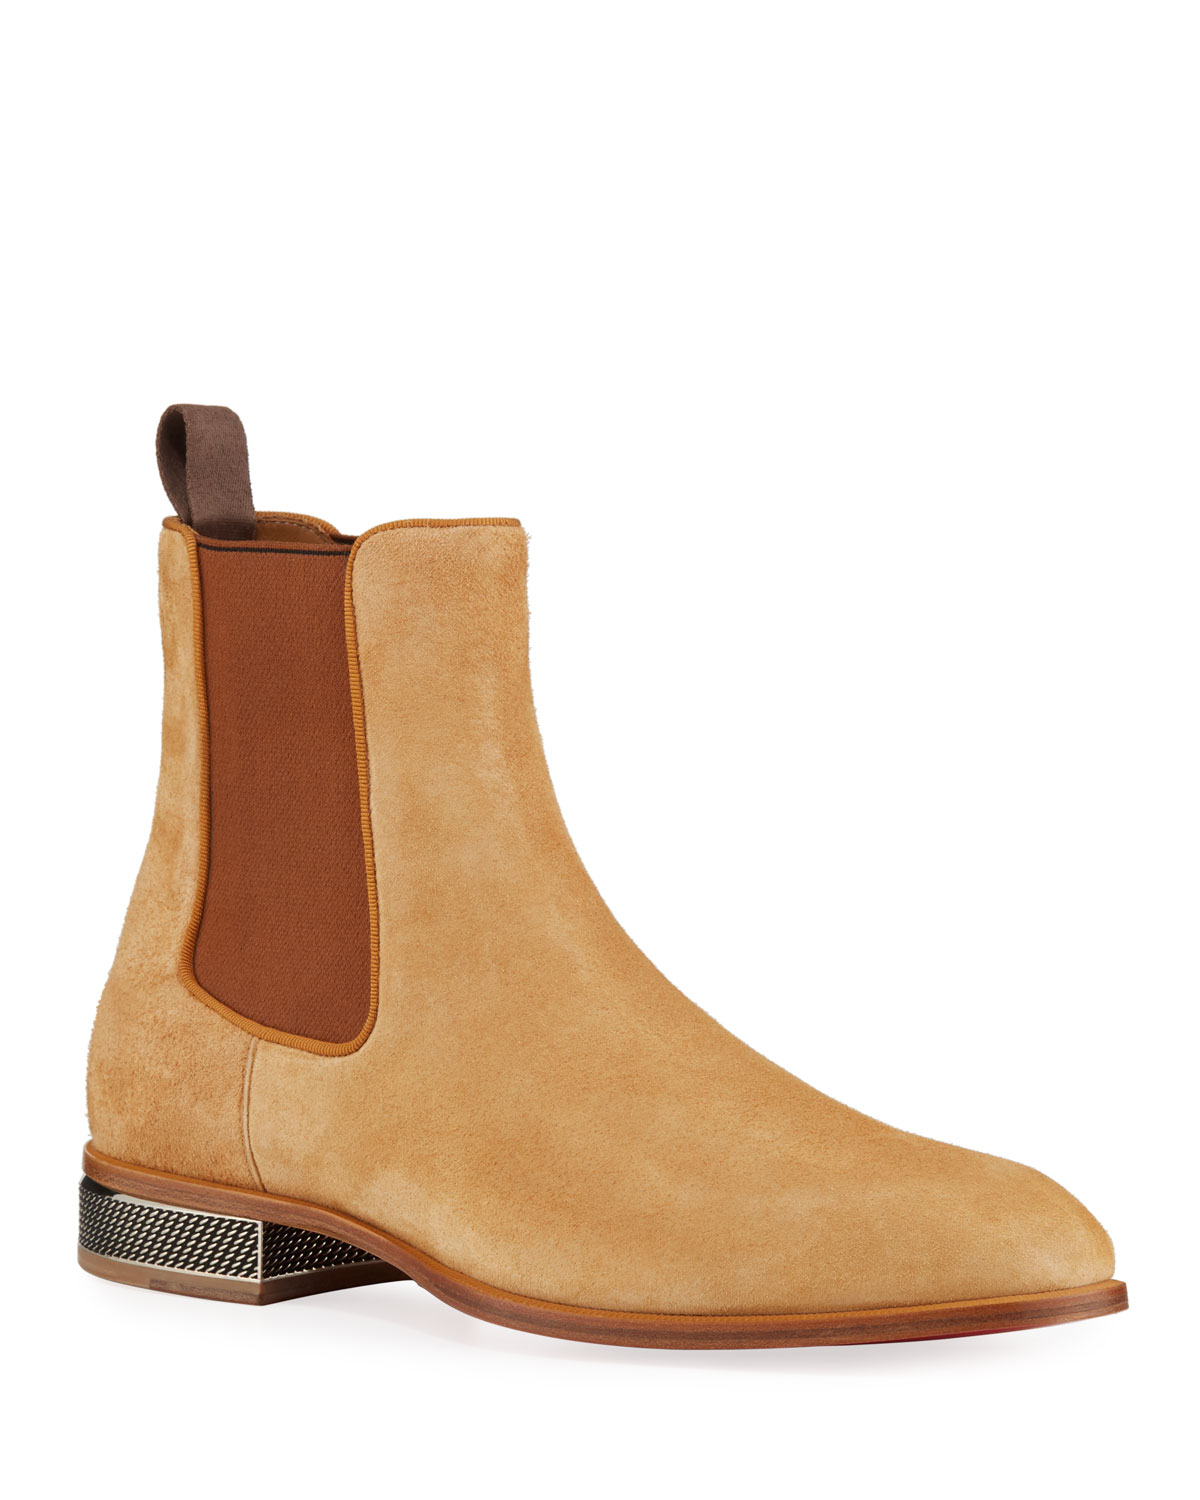 size 40 9dd78 a6c8f Men's Samsocool Red Sole Chelsea Boots